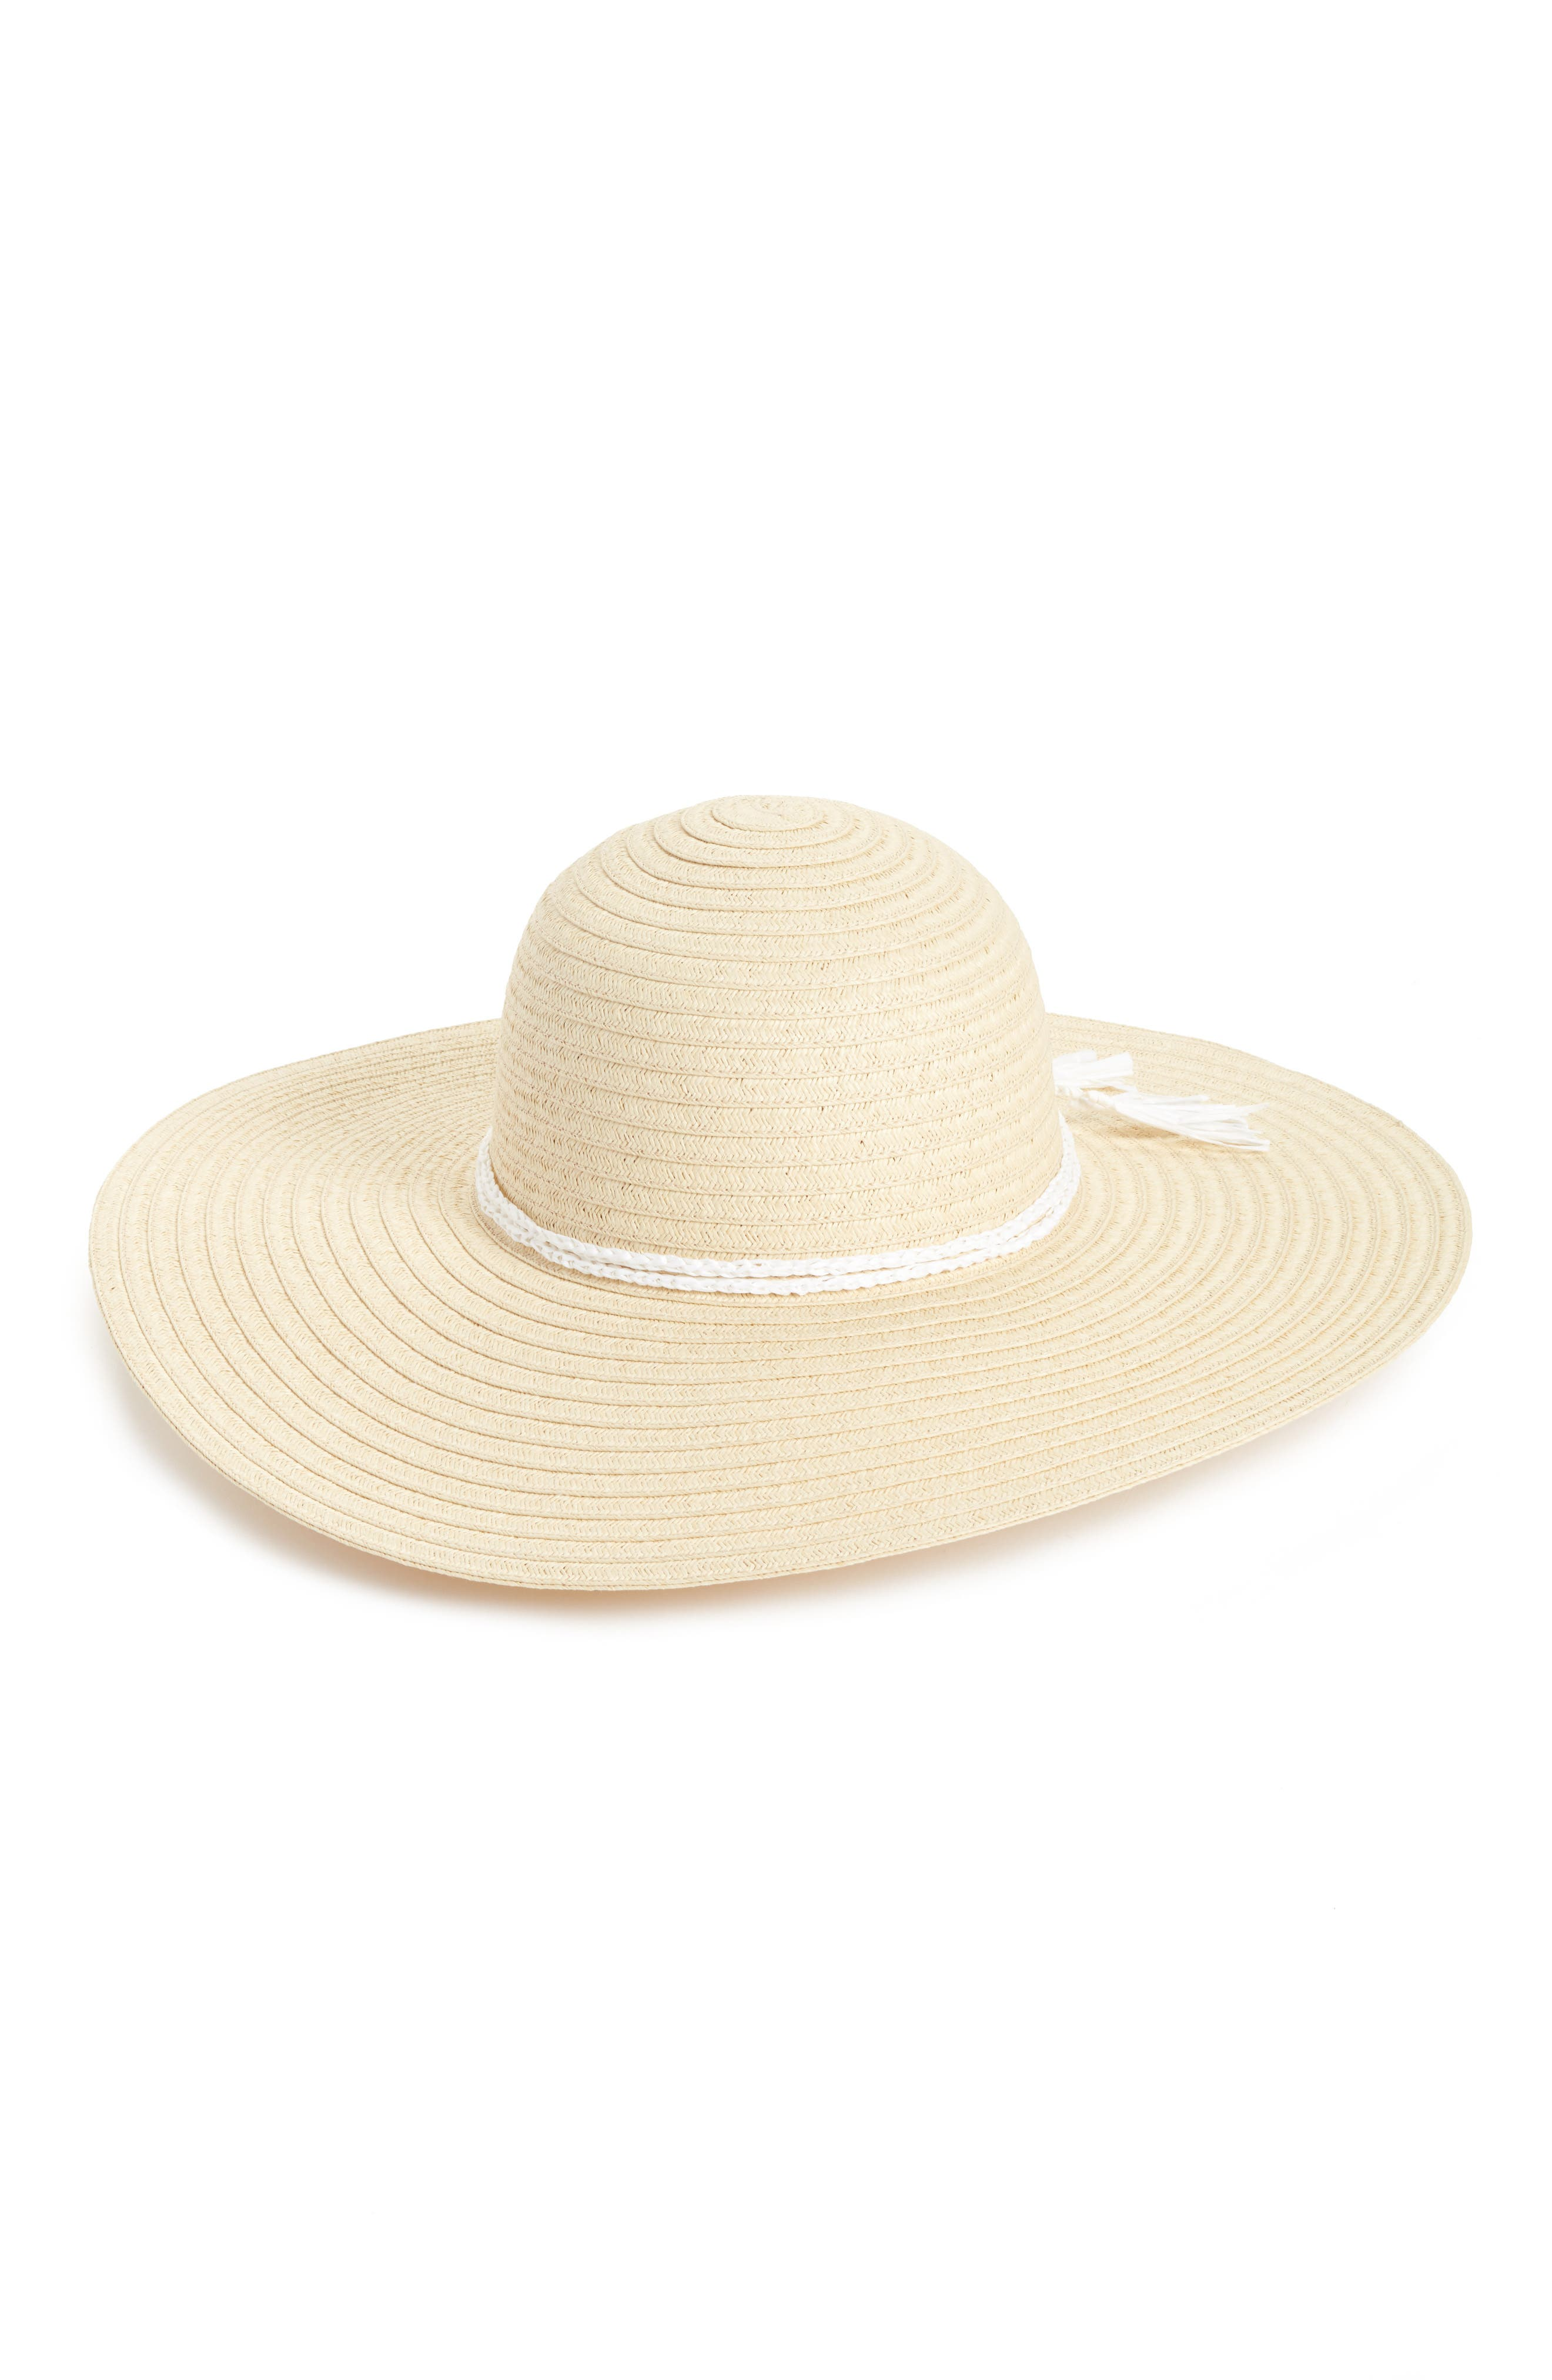 Floppy Hat,                         Main,                         color, Natural Combo